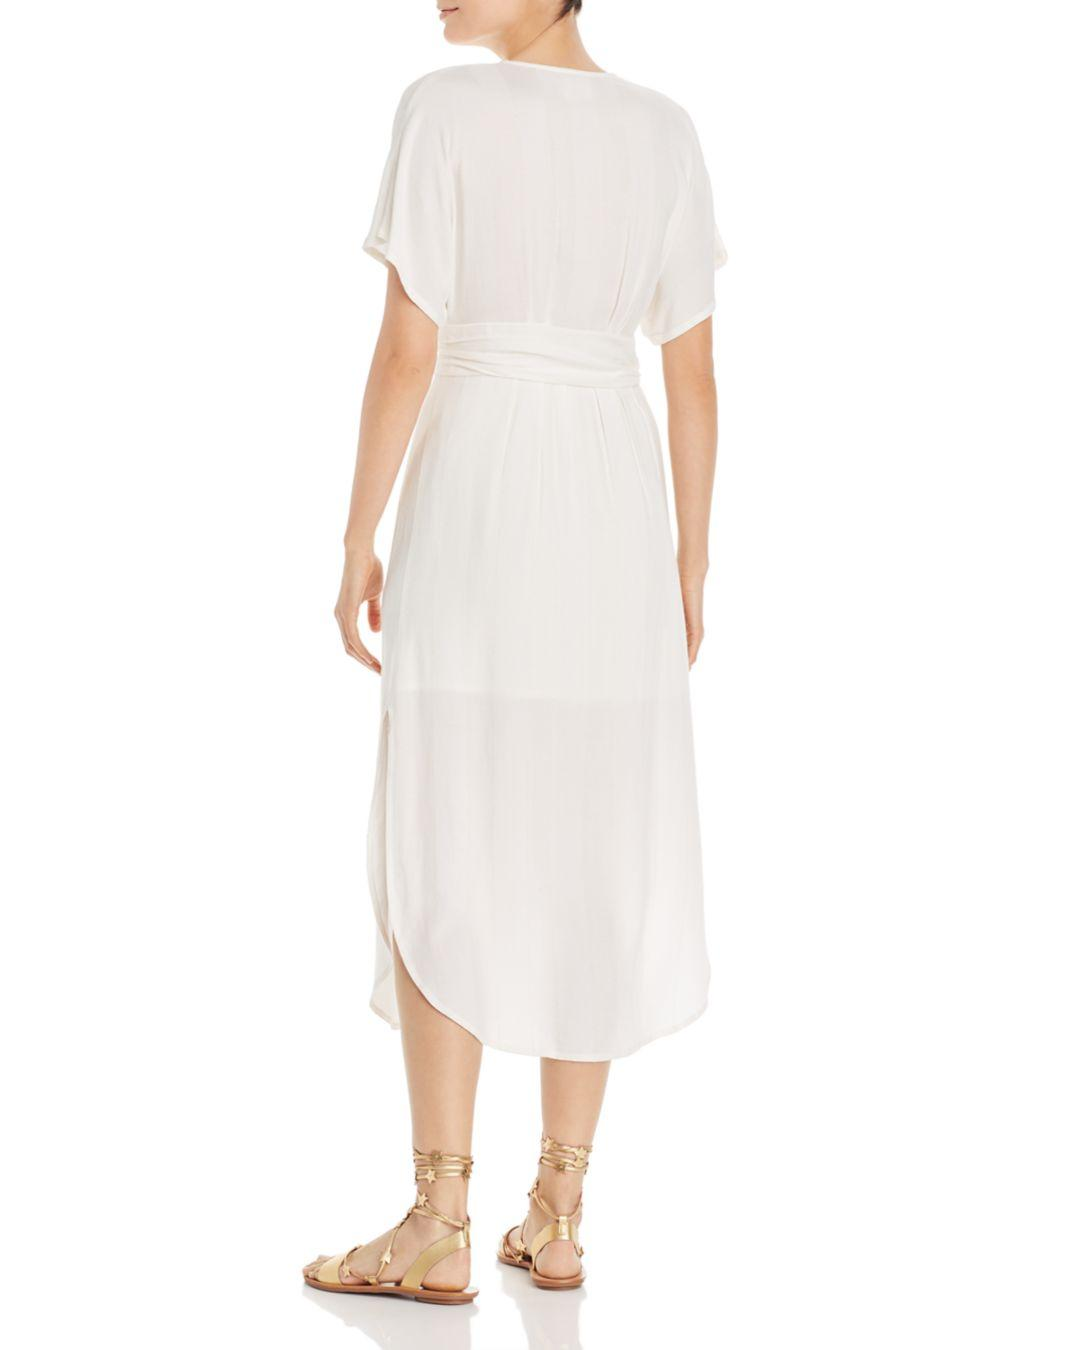 3f48fc586781 Lyst - Suboo Nadia Button-front Midi Dress in White